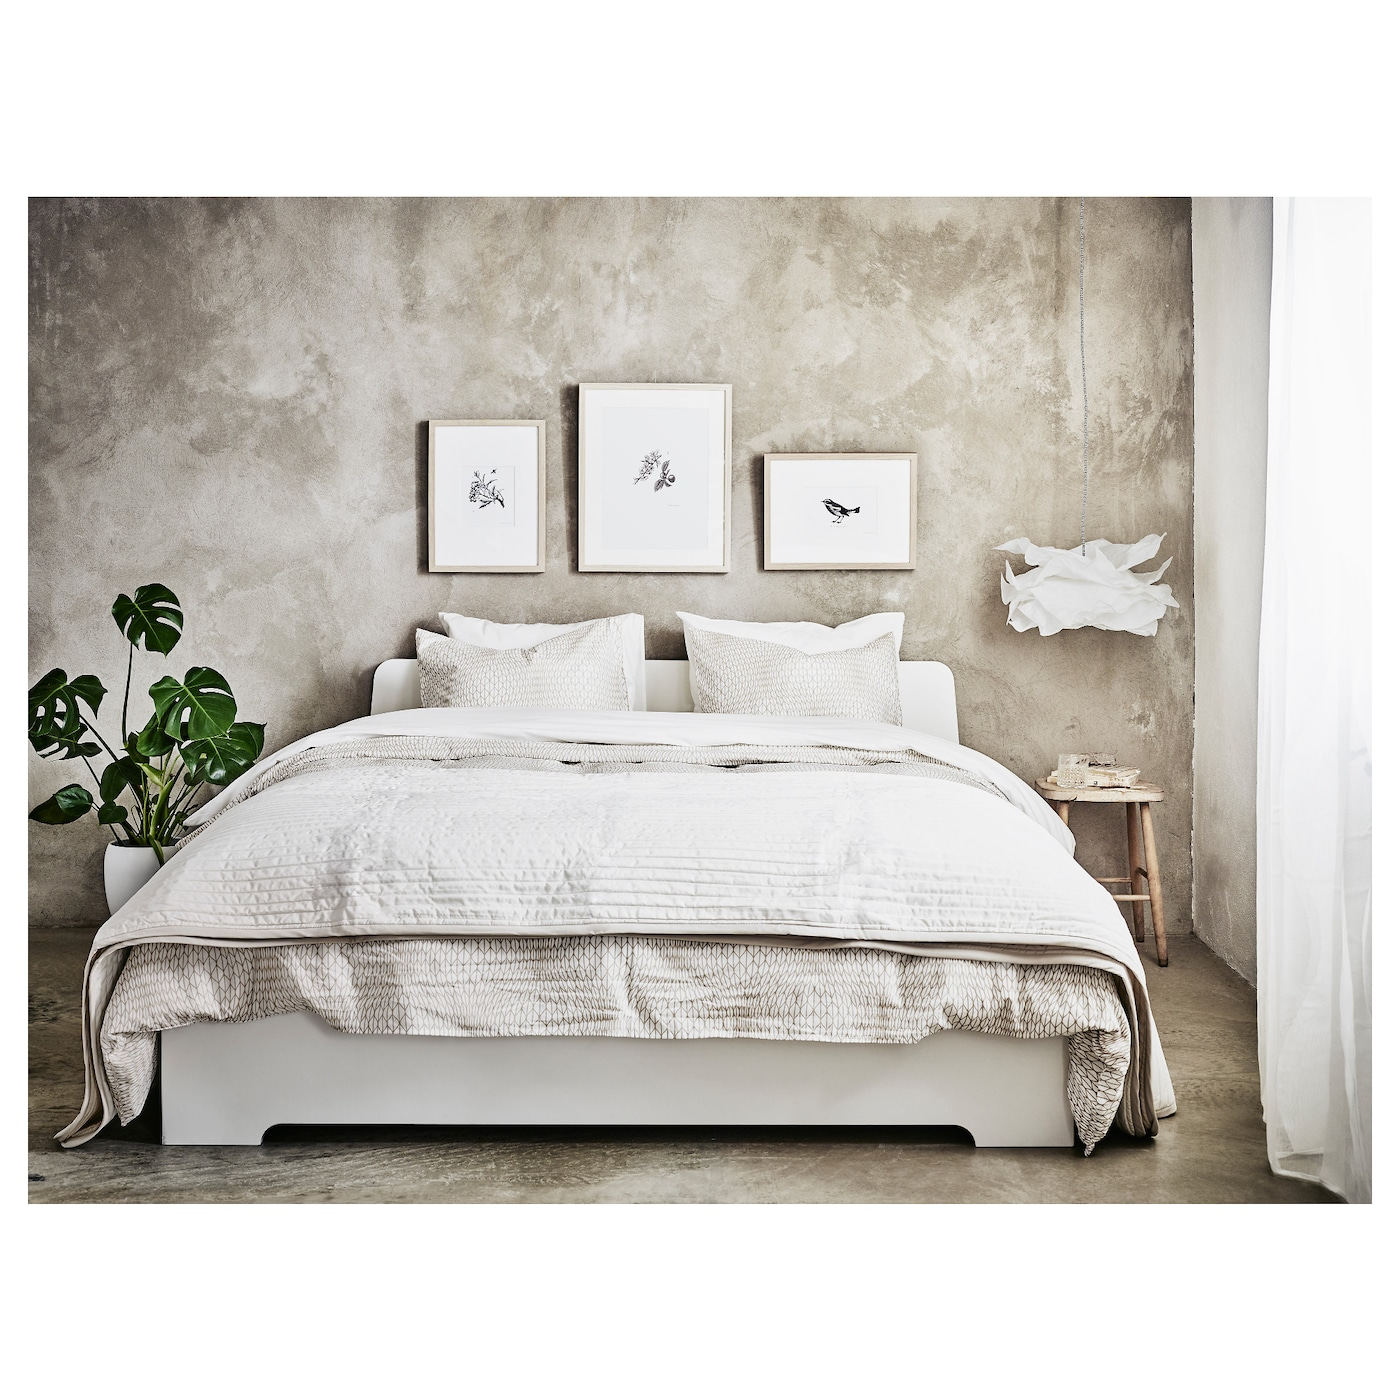 IKEA ASKVOLL bed frame Adjustable bed sides allow you to use mattresses of different thicknesses.